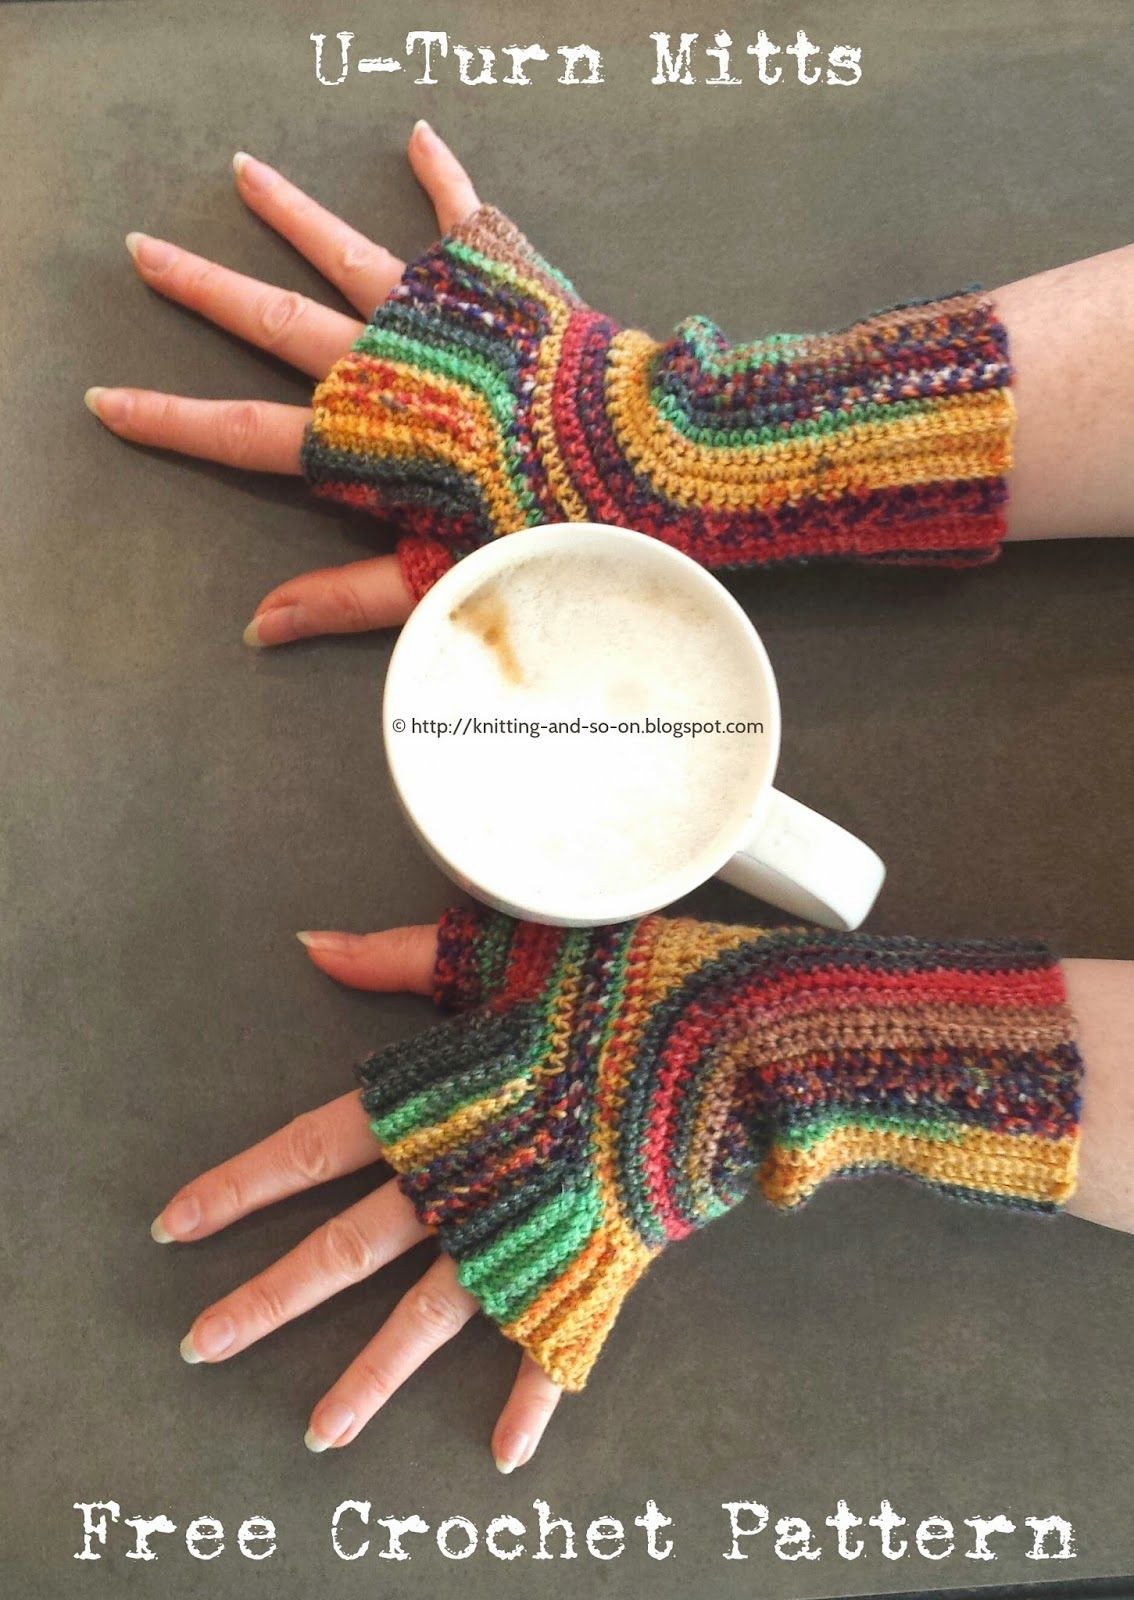 Fingerless gloves darn yarn -  These Fingerless Gloves Are Worked In On Piece Starting At The Outer Wrists And Ending At The Thumb In An Interesting Construction That Great To Show